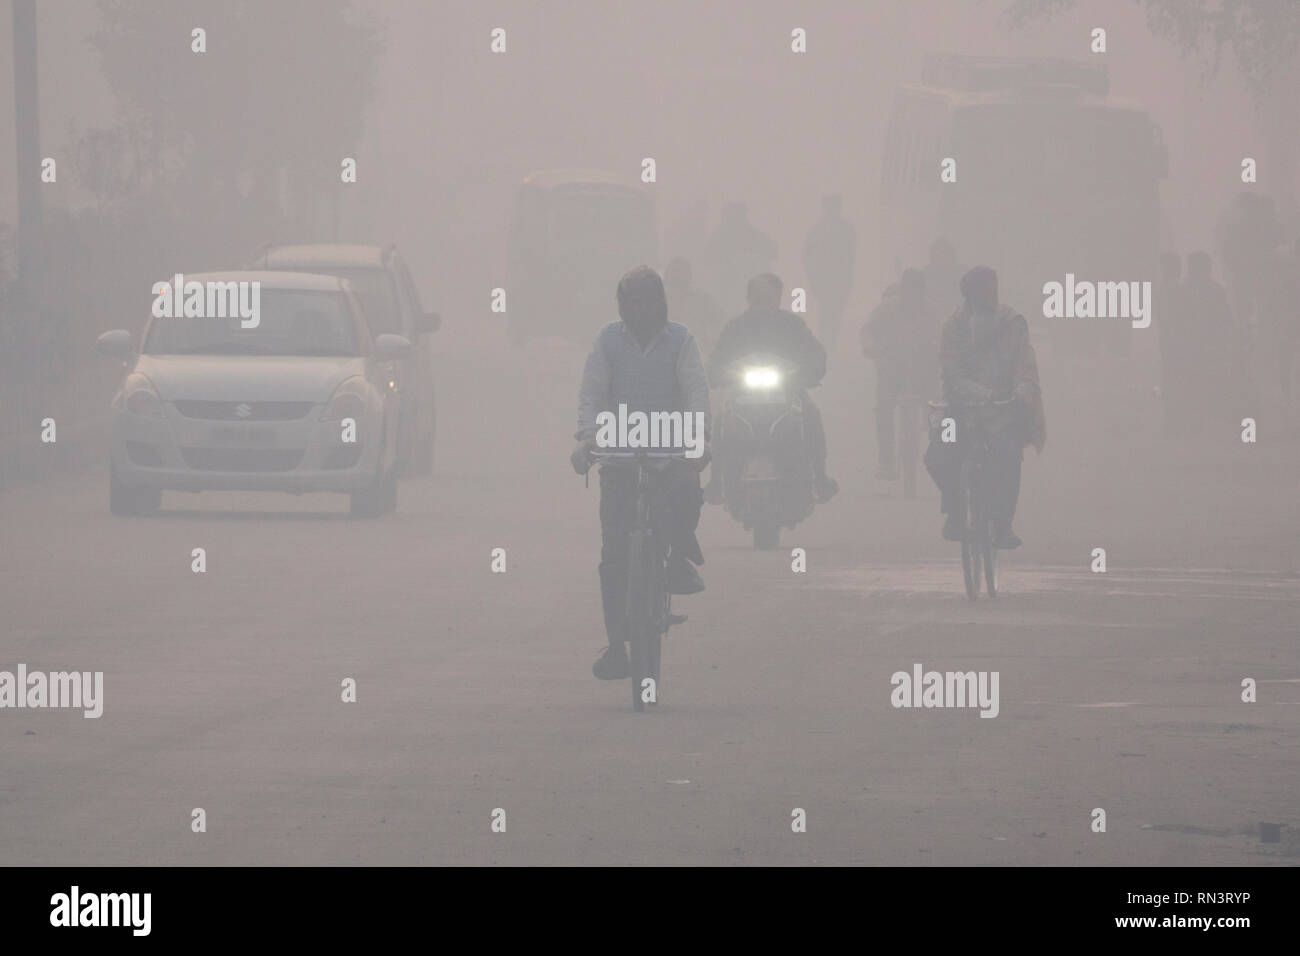 Indian people dealing with dangerous levels of air pollution in Amritsar, Punjab, India - Stock Image